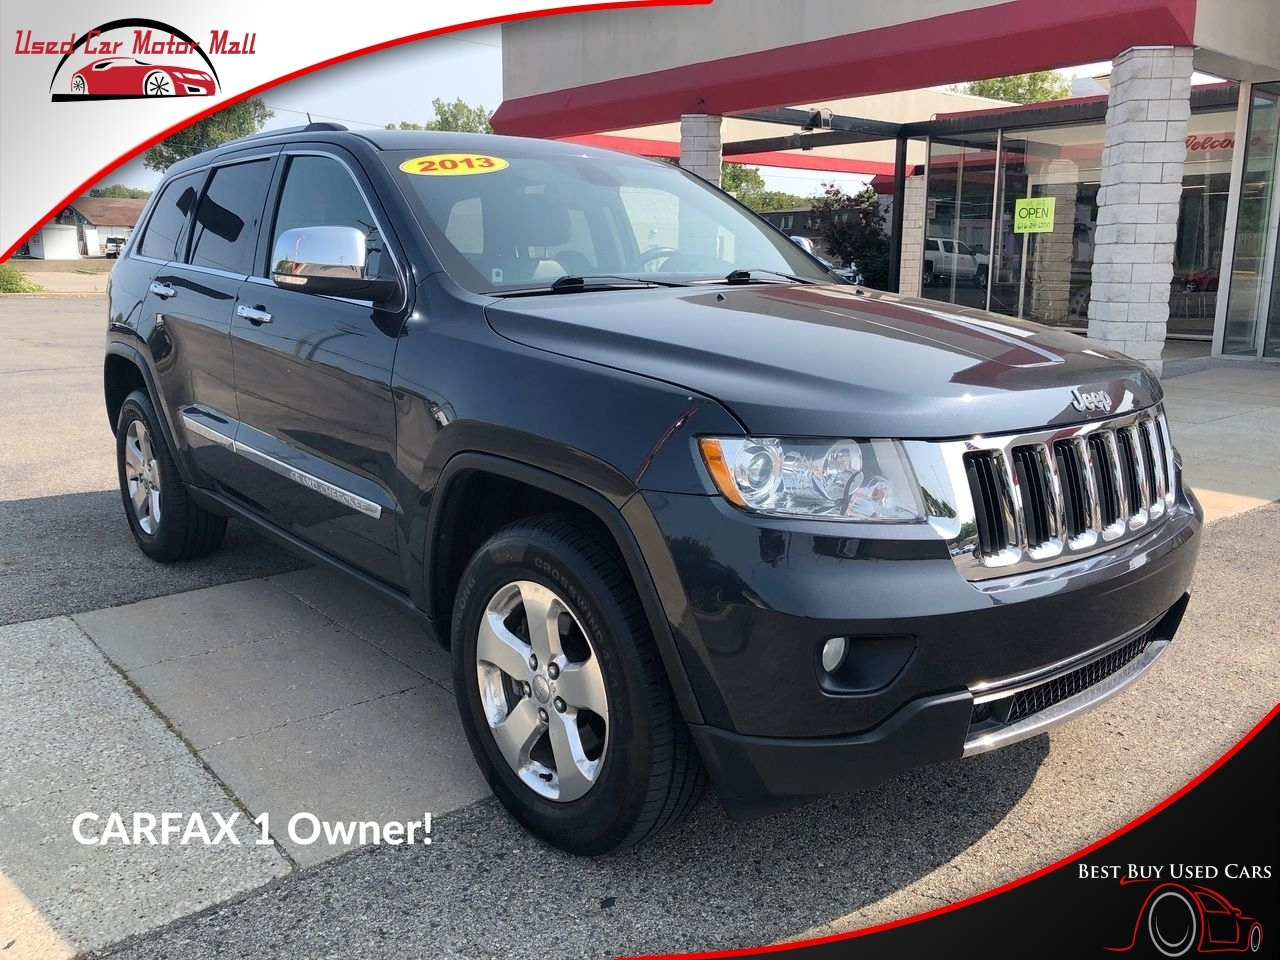 2013 Jeep Grand Cherokee Laredo 4WD, 556068, Photo 1